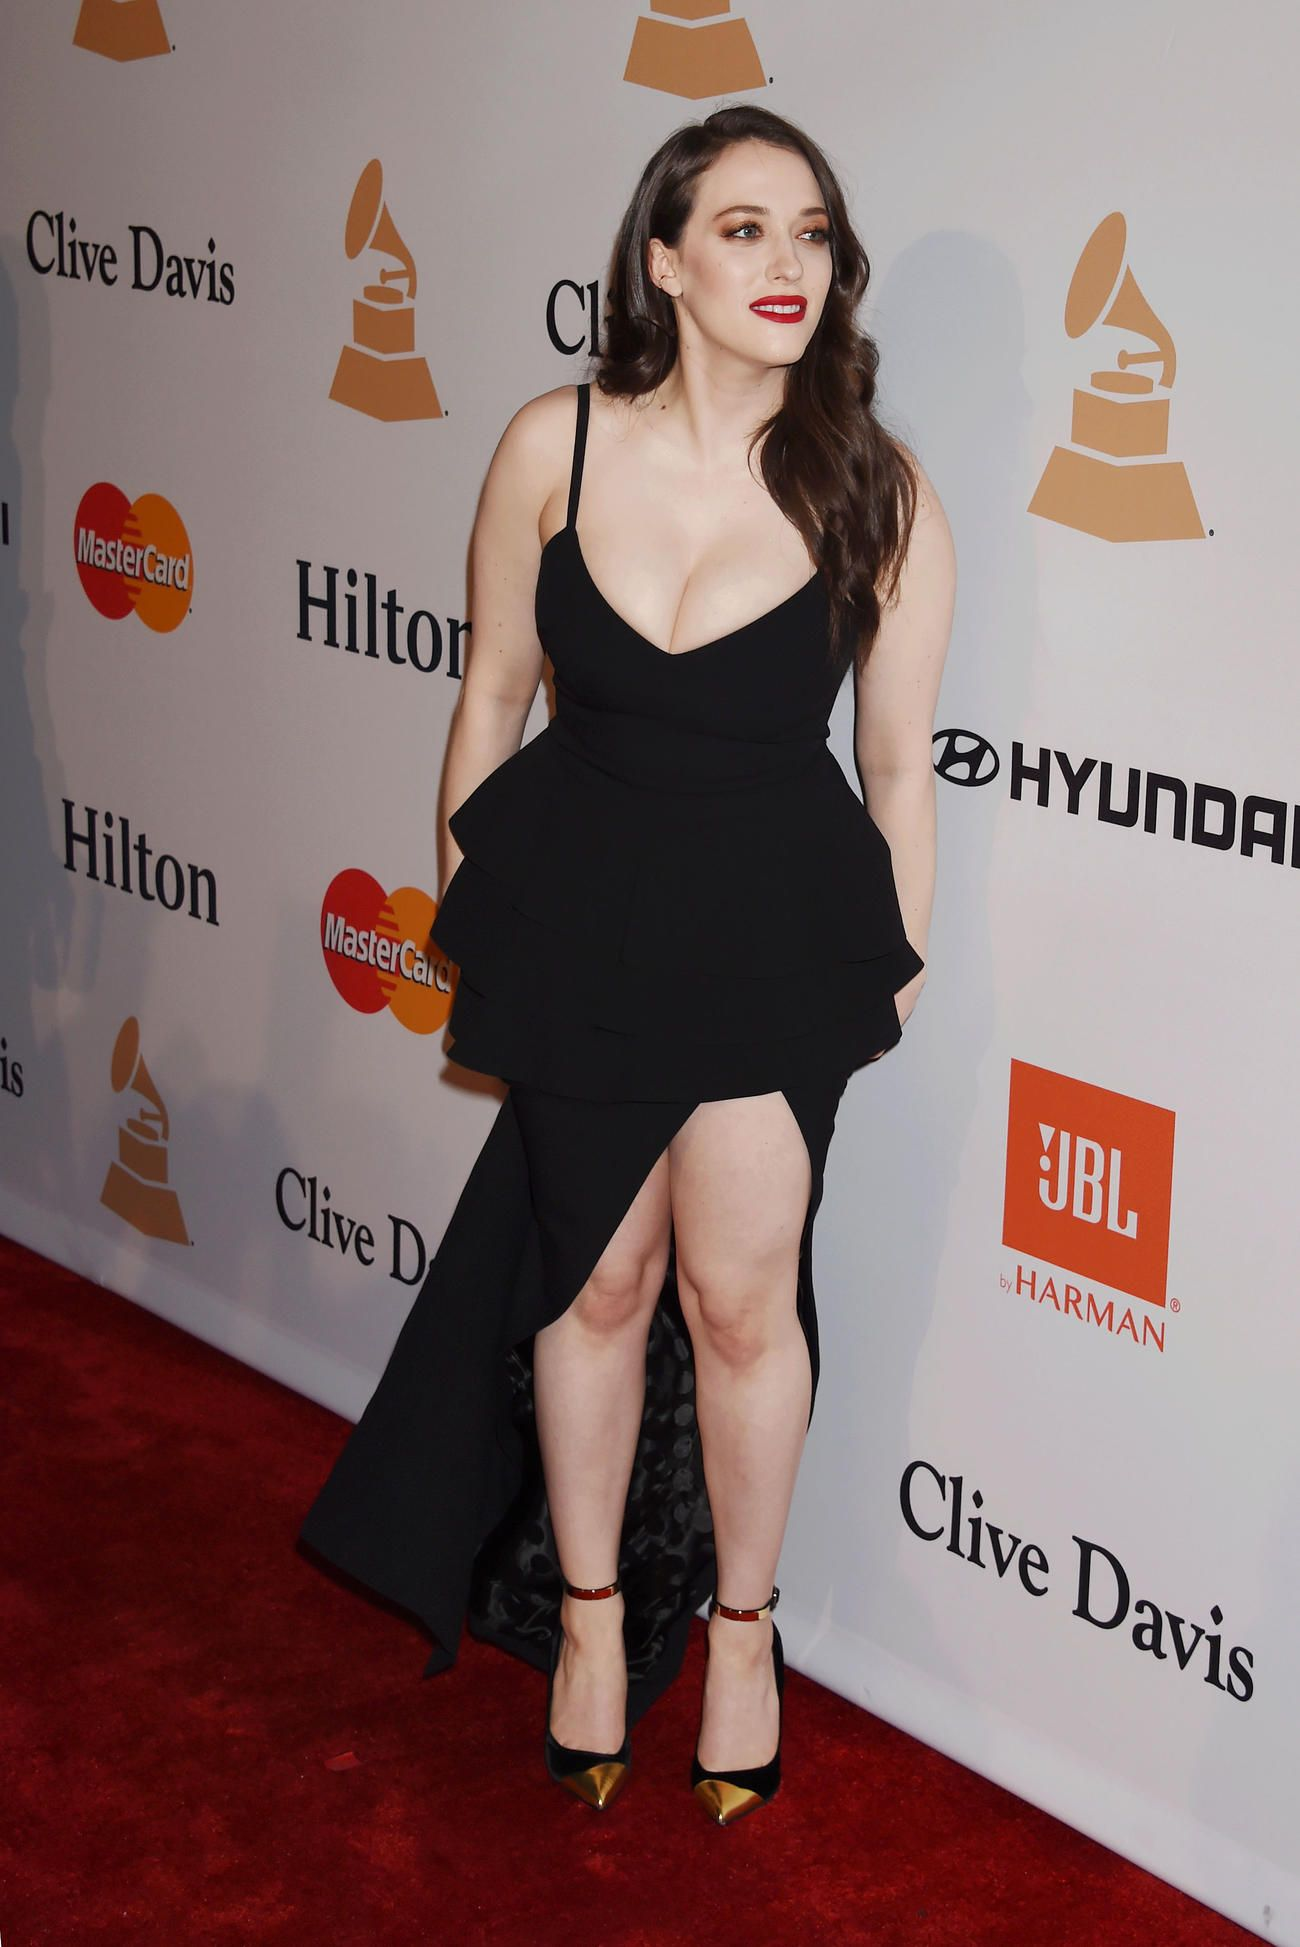 21st Century Child Stars All Grown Up And Hot Kat Dennings Kat